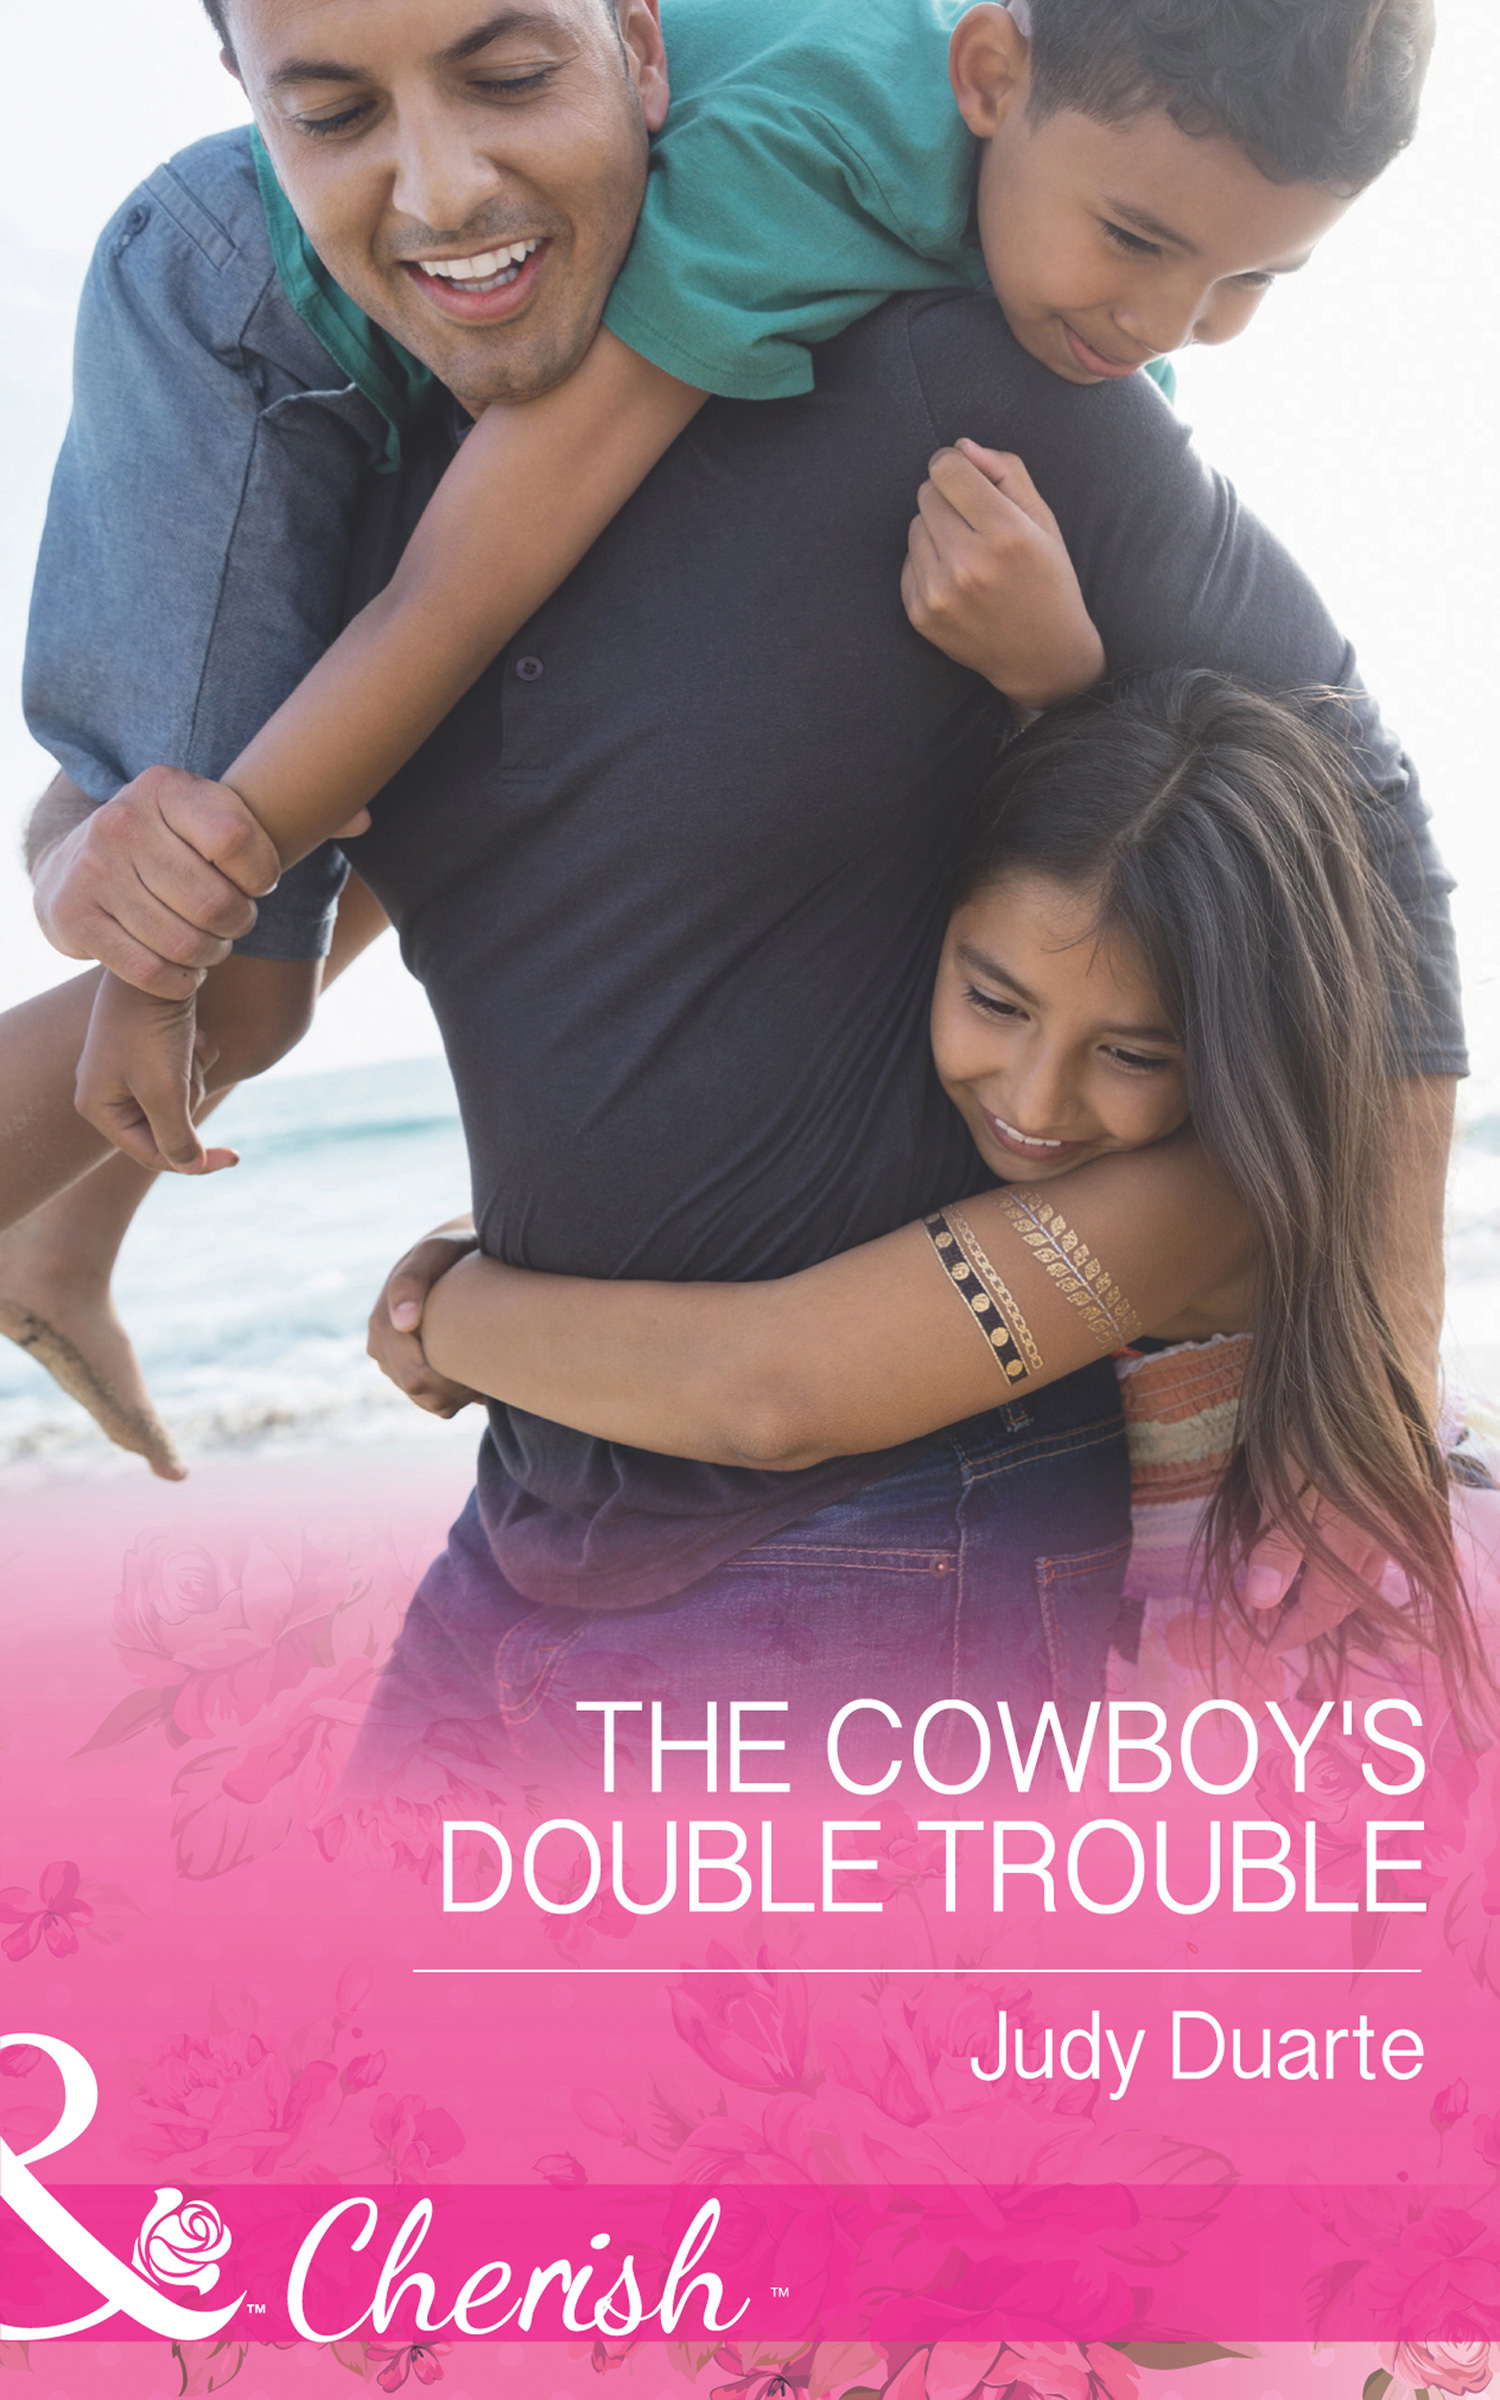 The Cowboy's Double Trouble